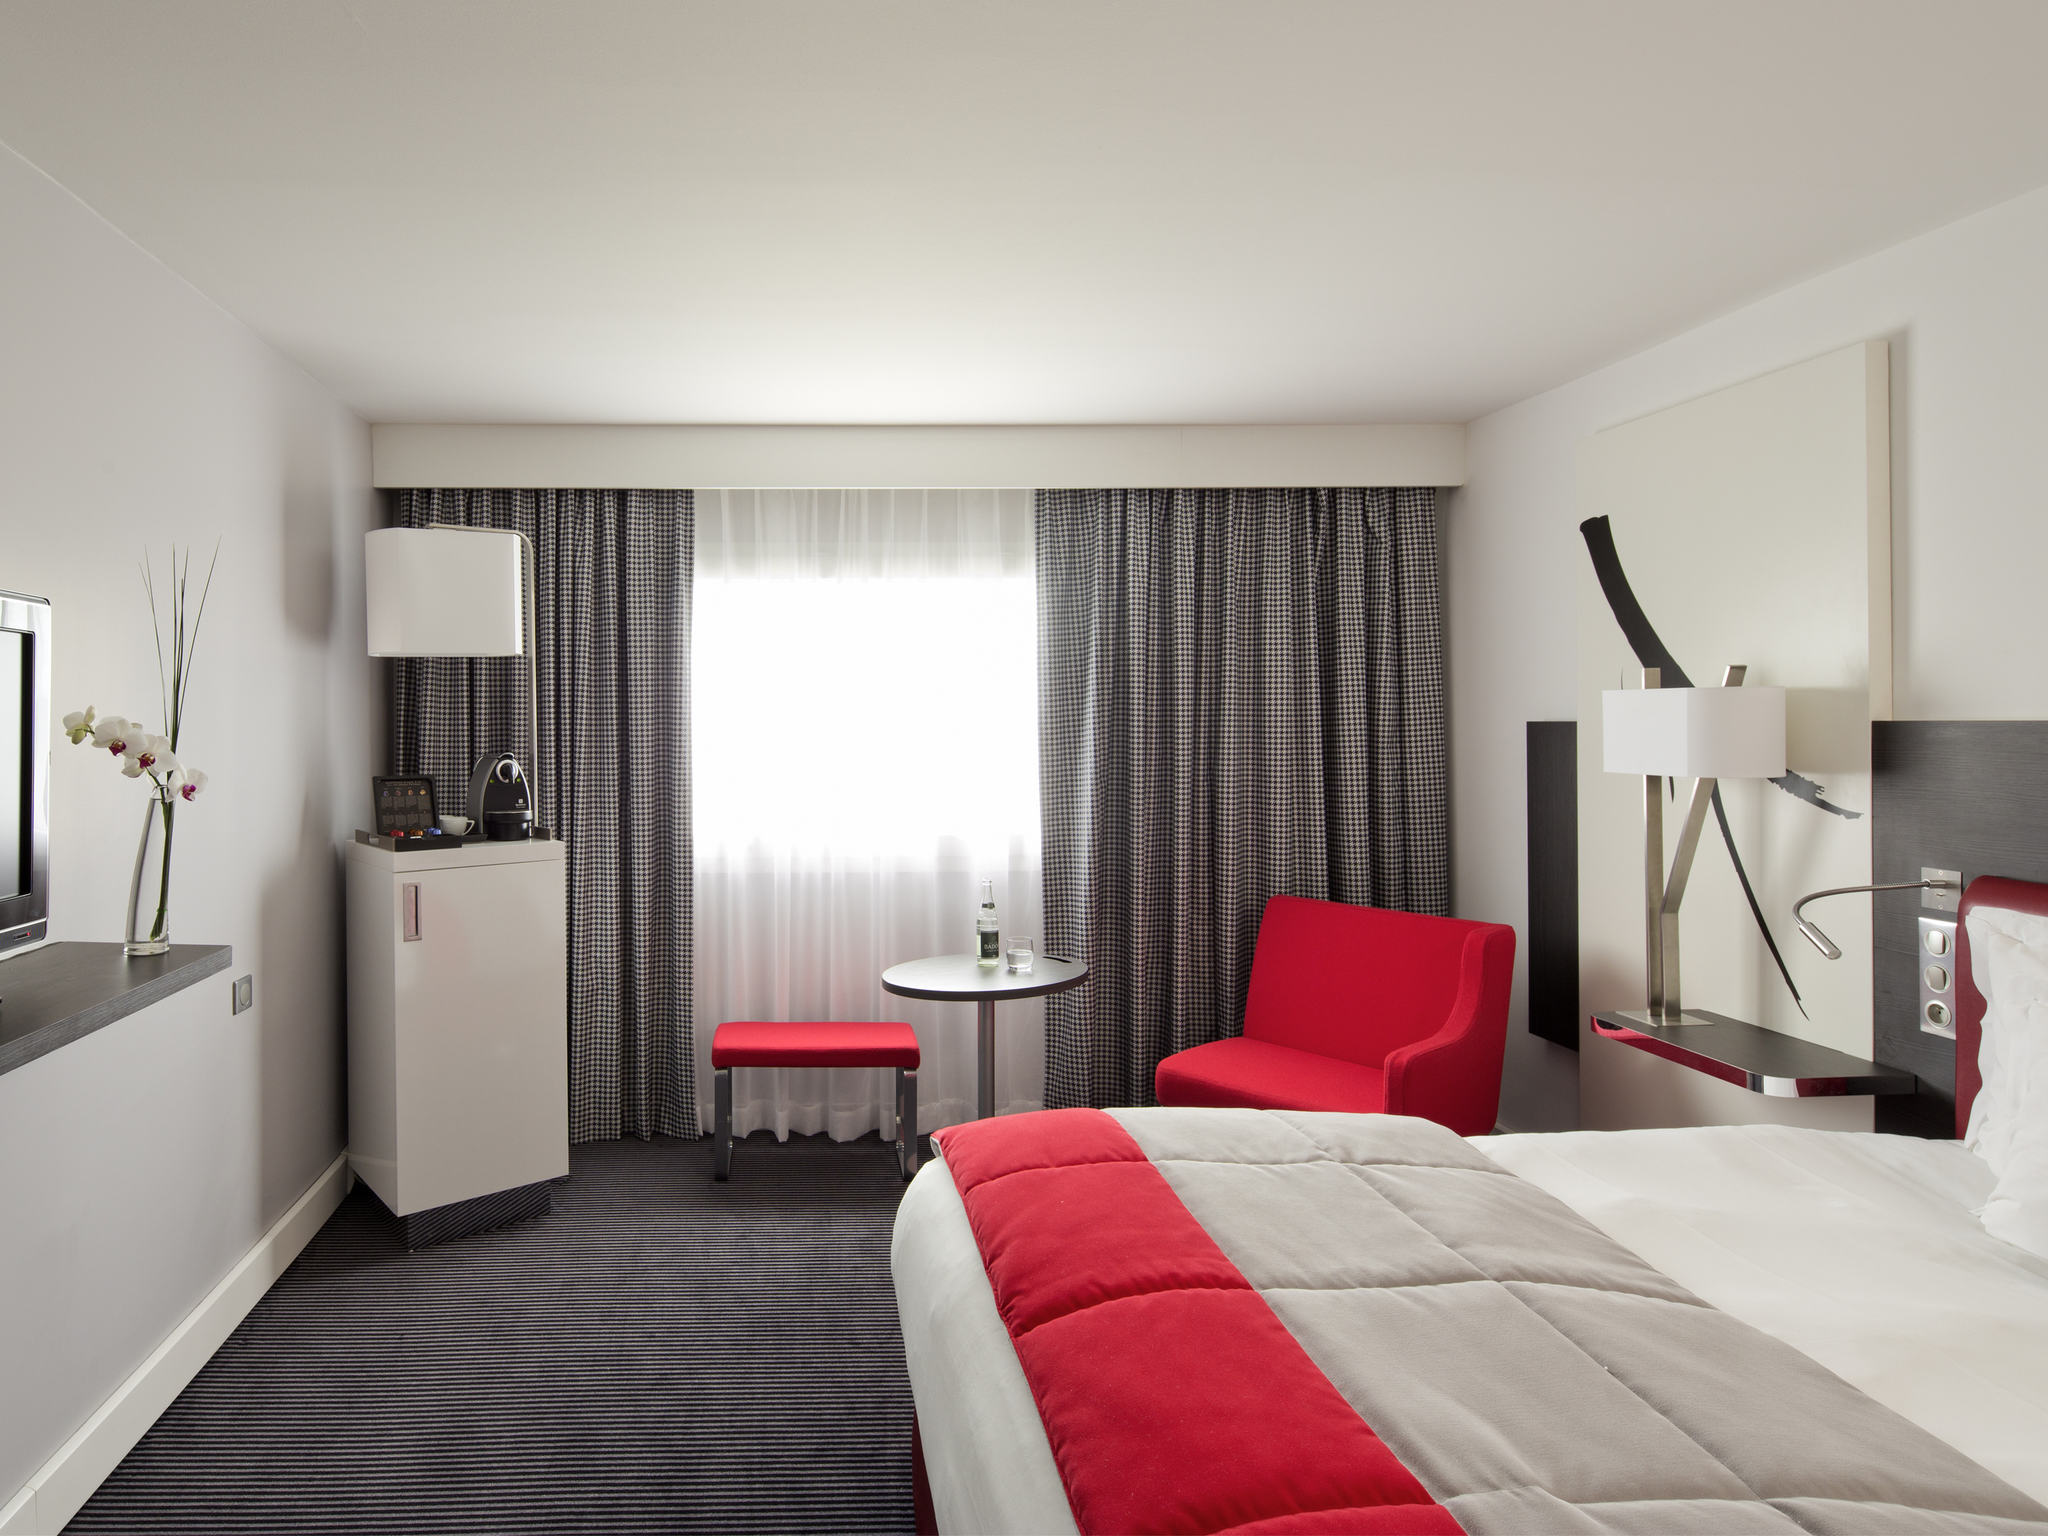 hotel charles de gaulle airport paris. Black Bedroom Furniture Sets. Home Design Ideas